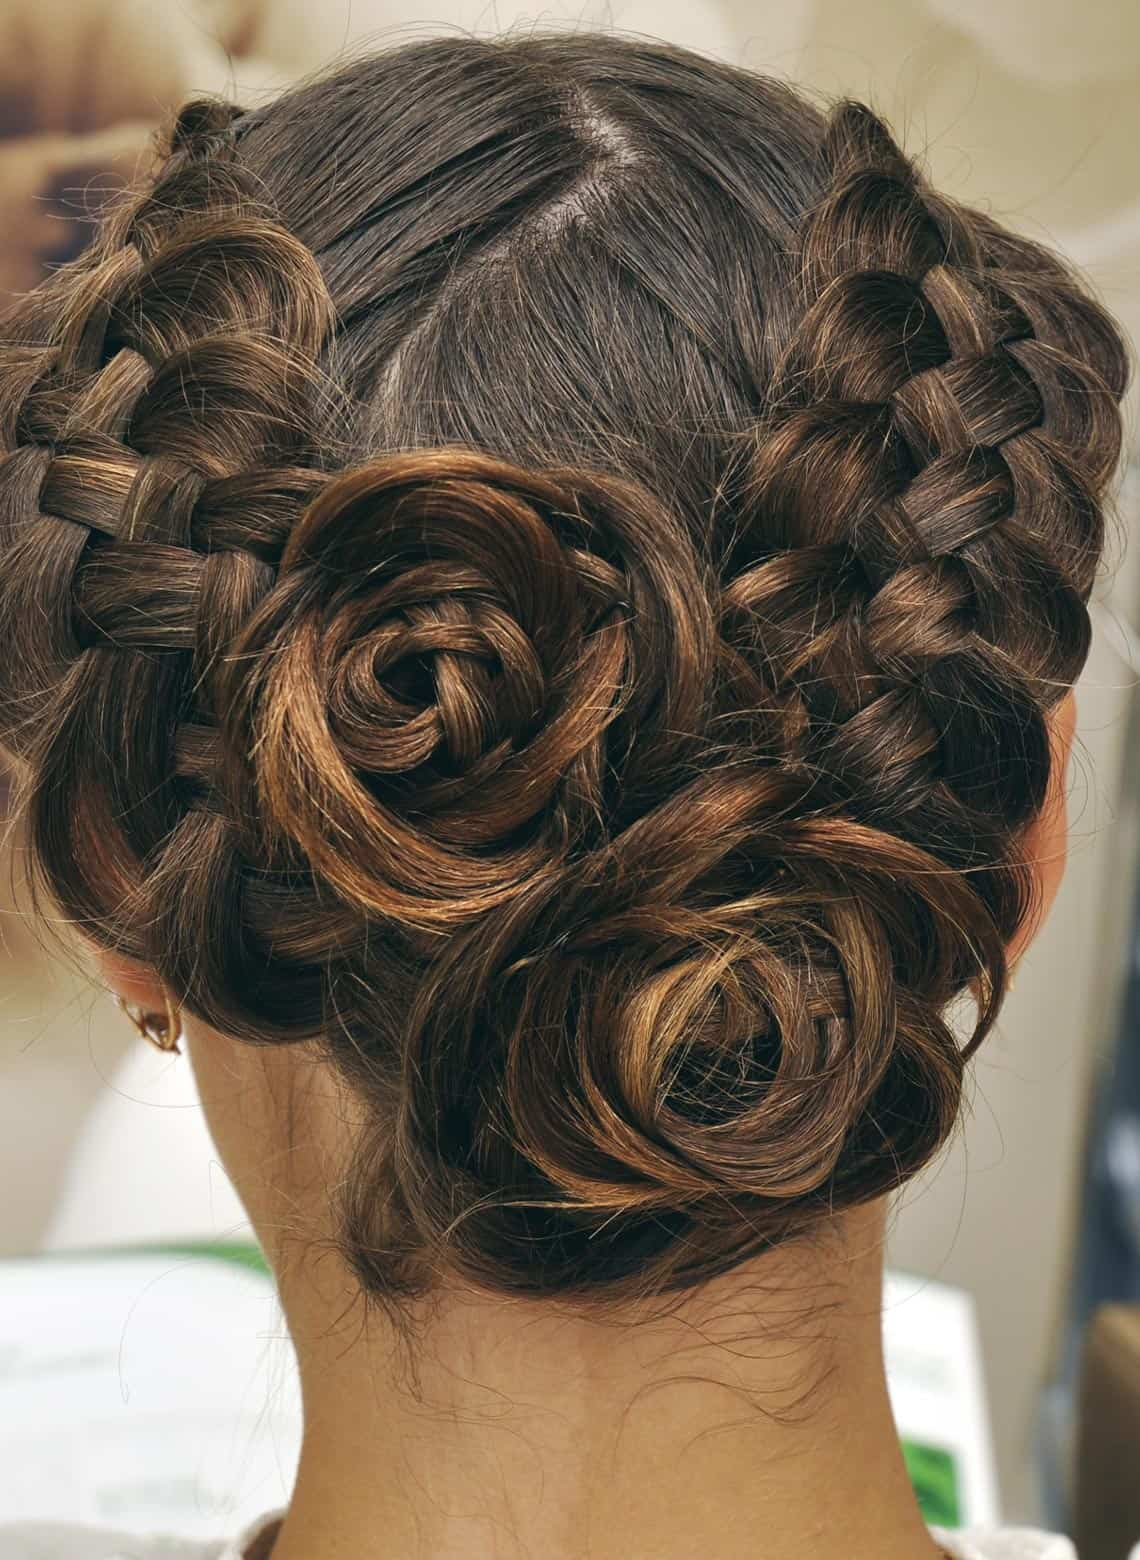 woman with braided rose updo